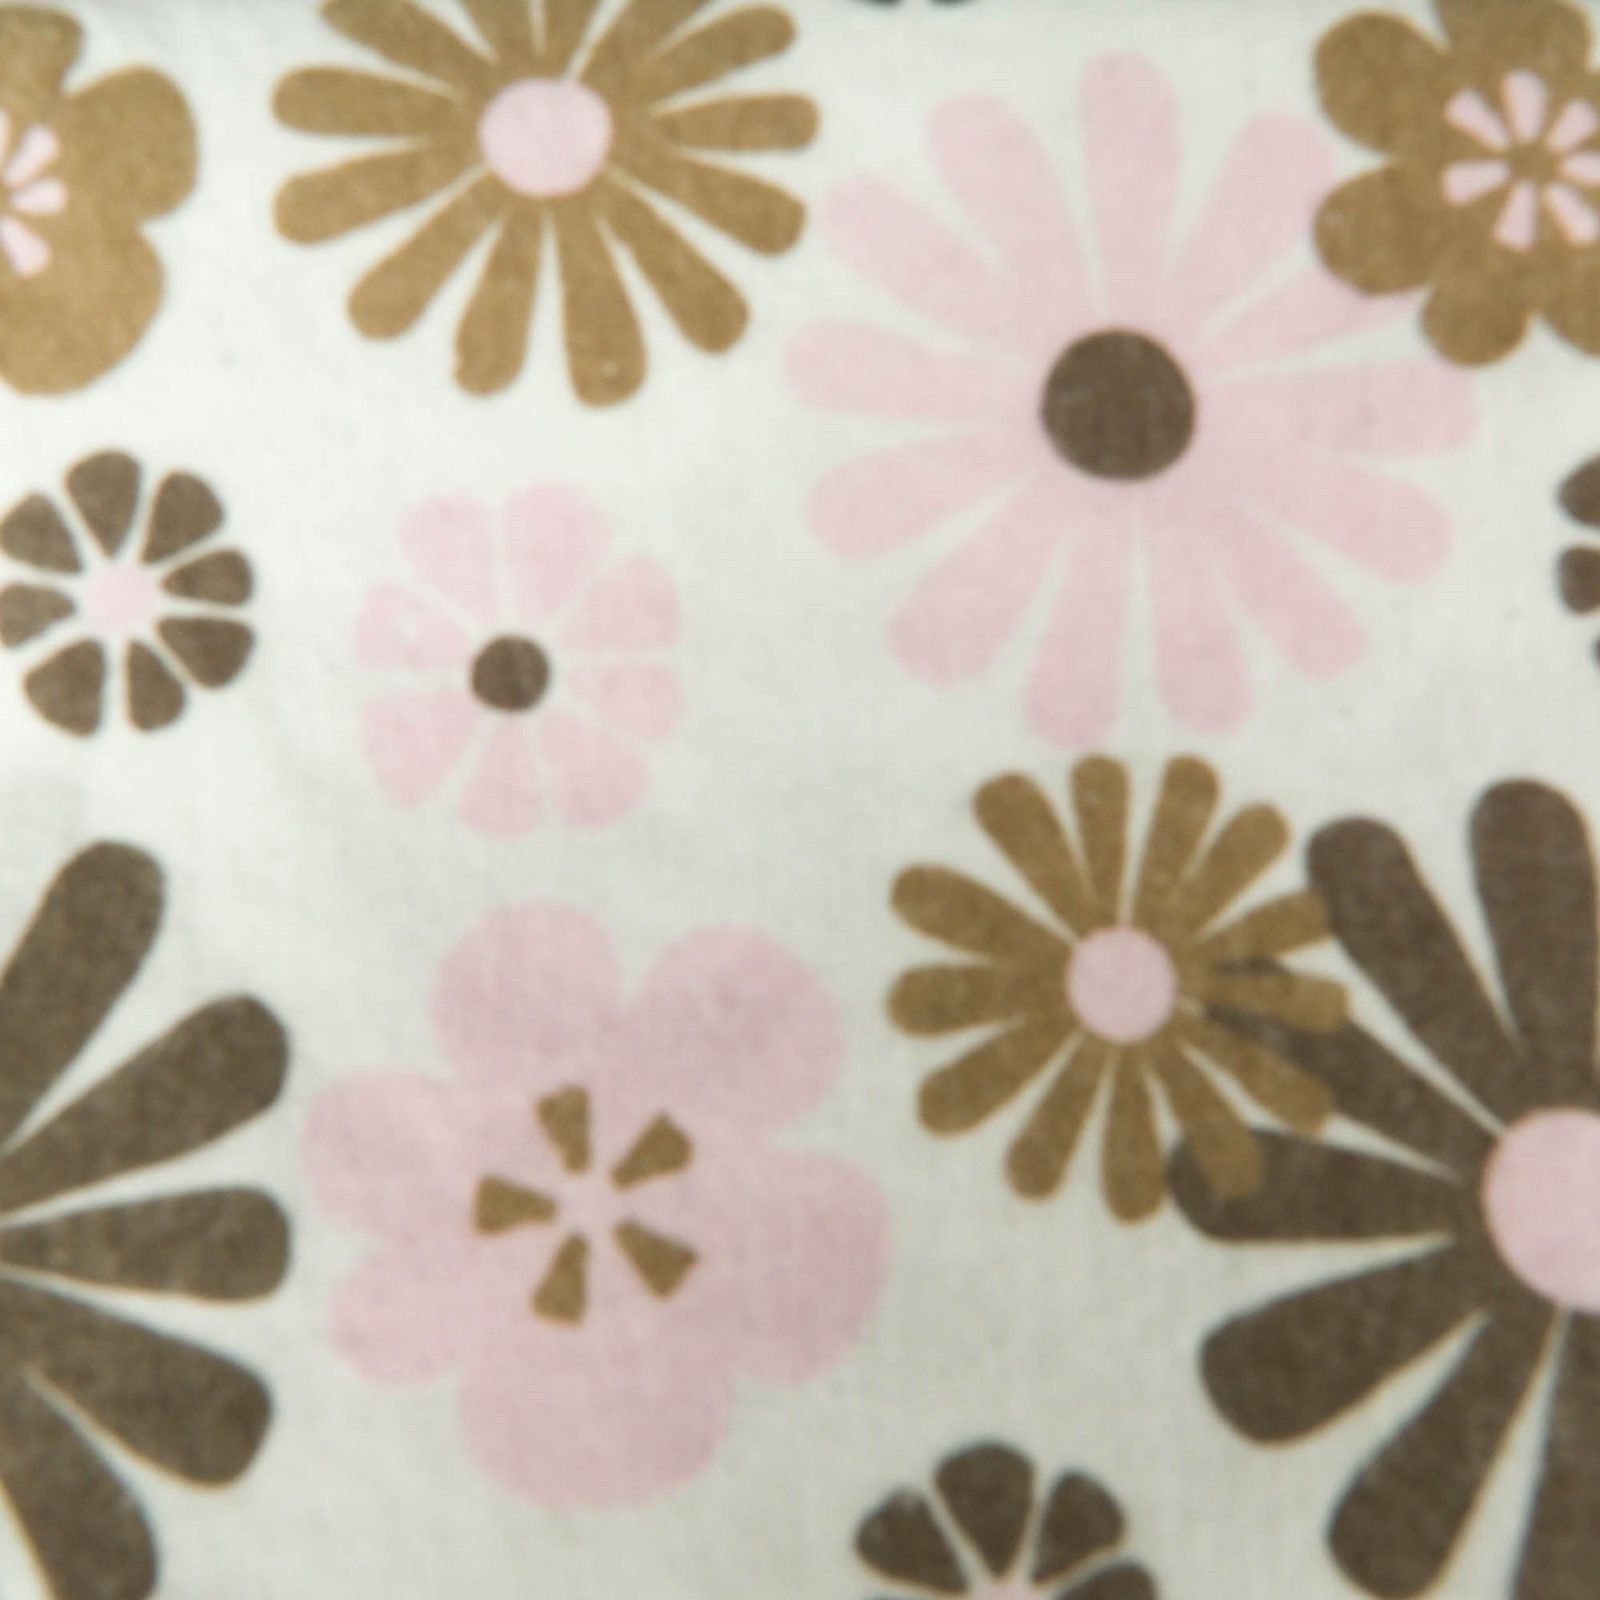 Set of 2 Carters Receiving Blankets Girls Pink Brown Floral Dots 100% Cotton